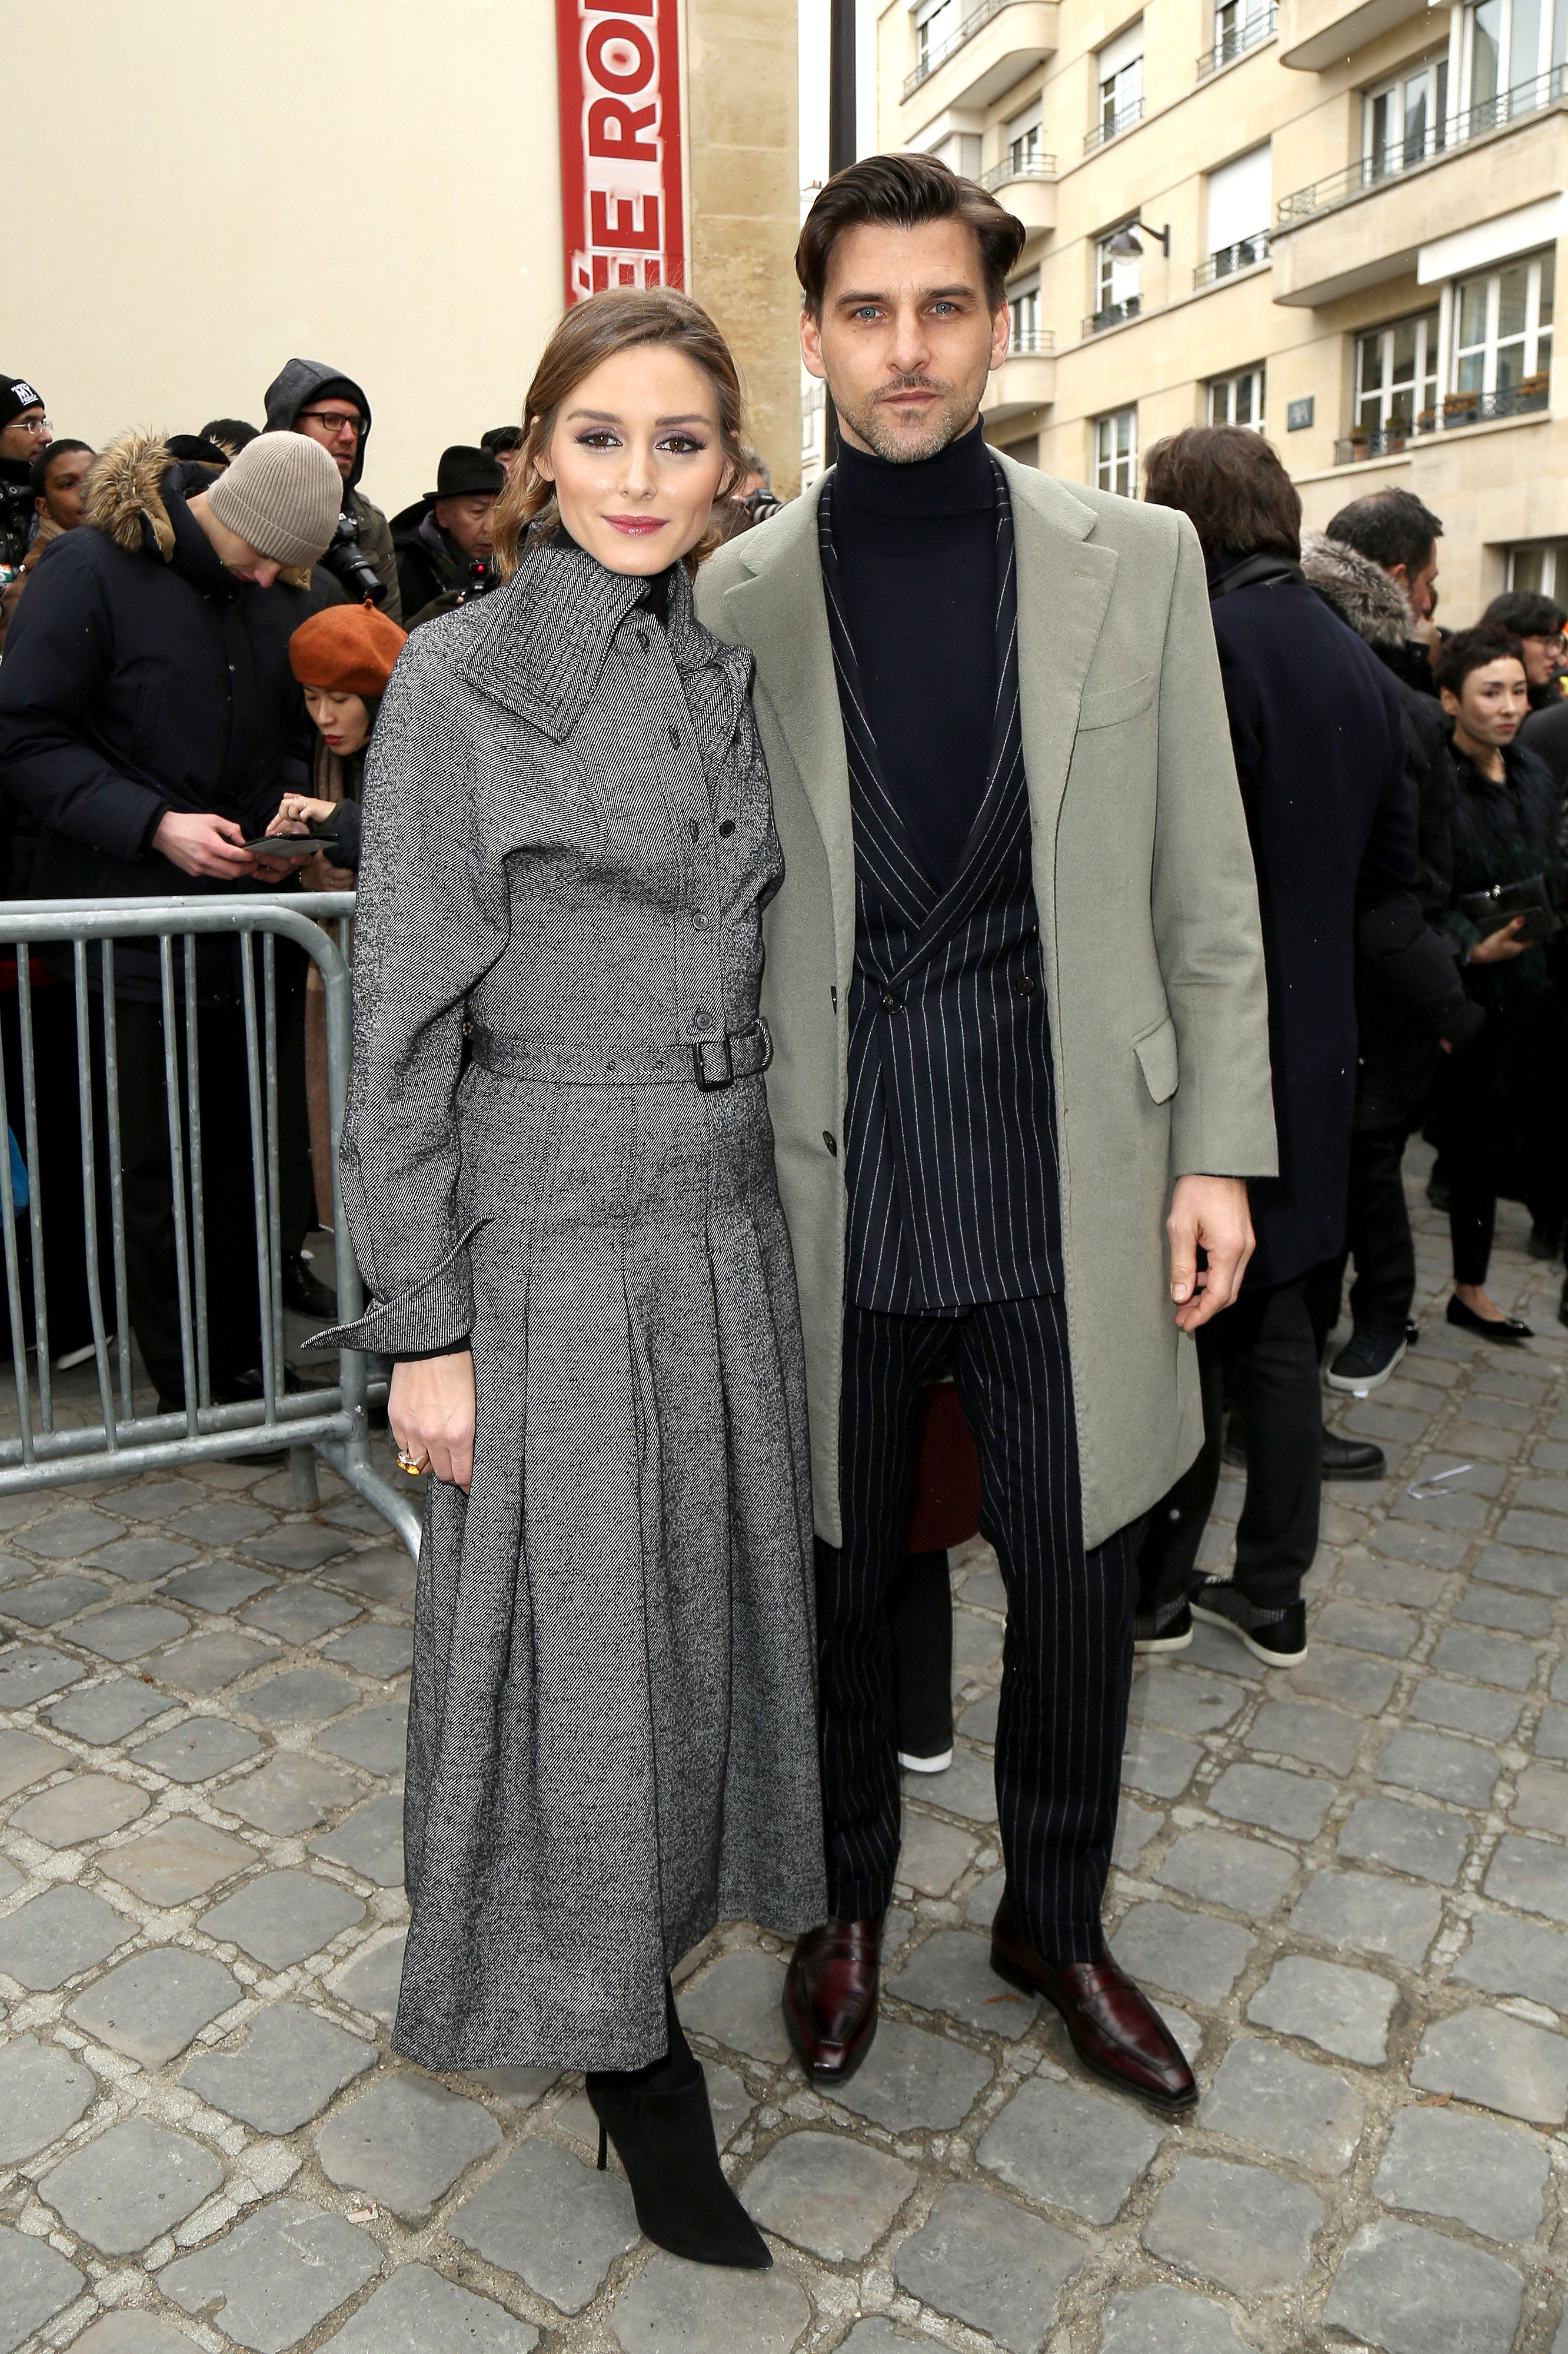 Olivia Palermo and husband Johannes Huebl arrive at the Christian Dior fashion show as the best dressed couple in Paris during the festivities of fashion week. February 27, 2018 X17online.com USA ONLY